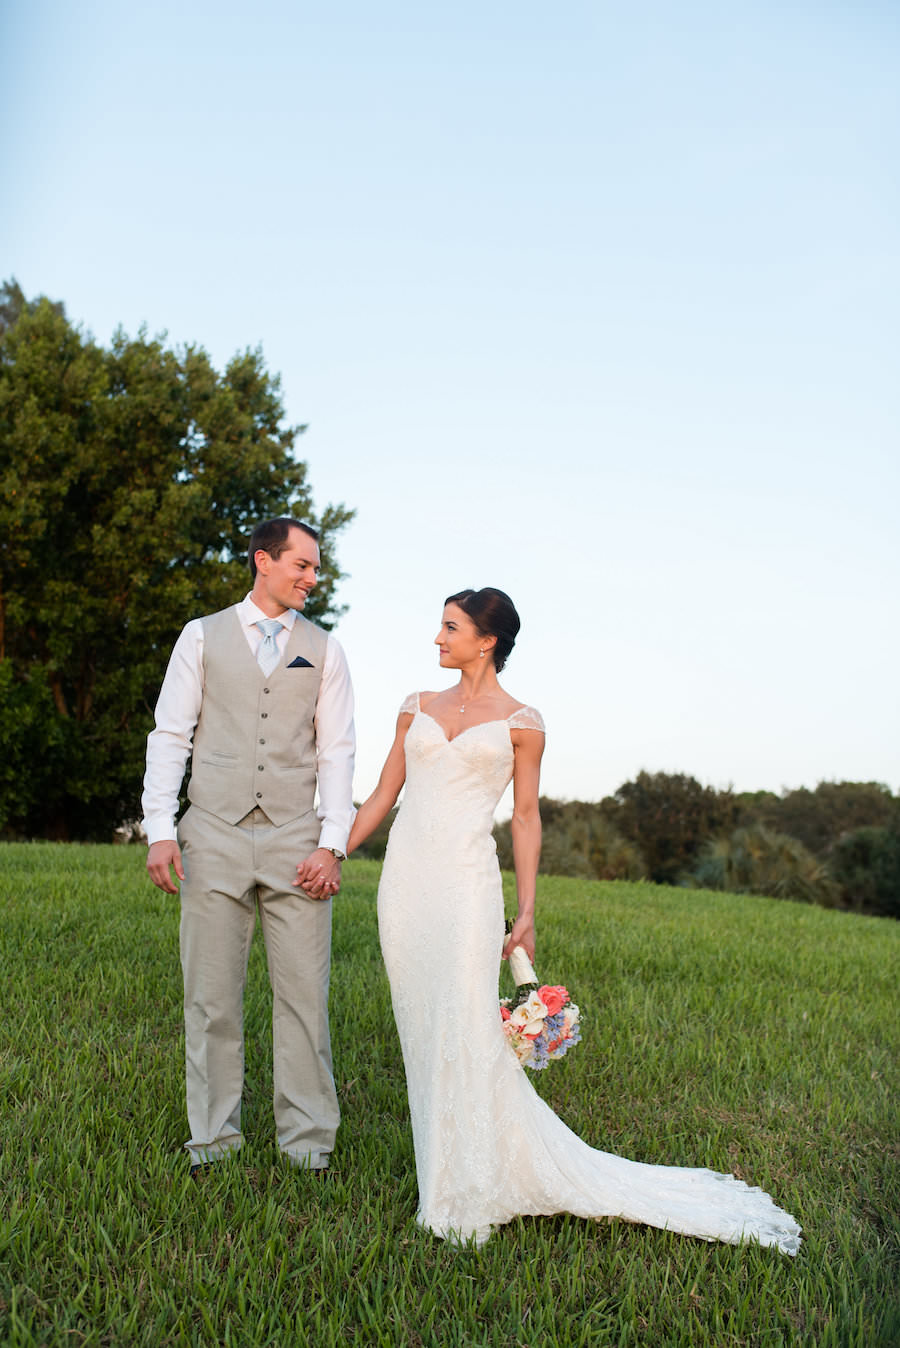 Bridal Wedding Day Portrait of Bride in Wedding Dress and Groom in Suit with Vest in a Grassy Field   Clearwater Wedding Photographer Caroline and Evan Photography